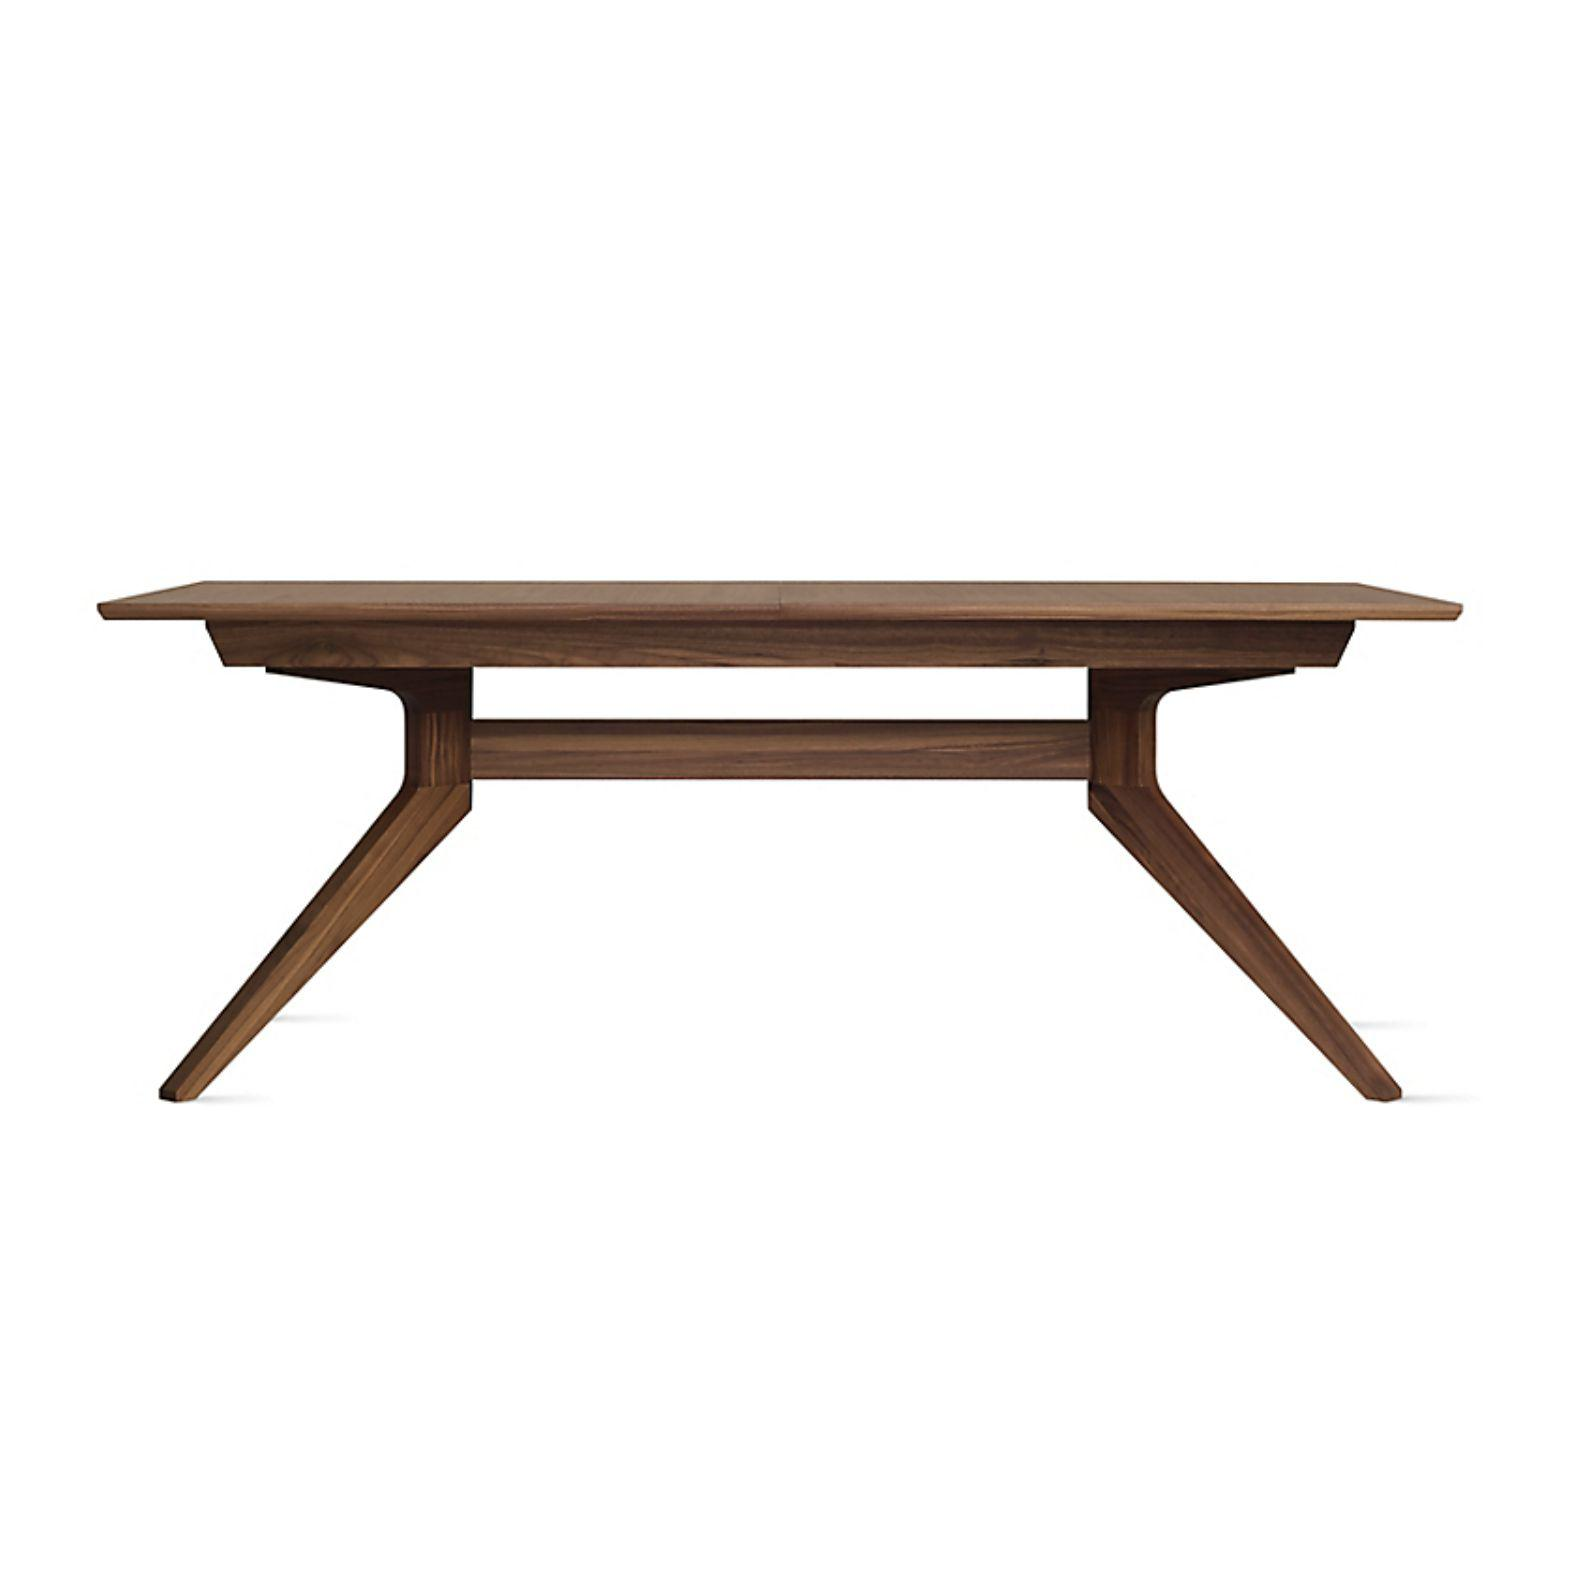 design within reach outdoor furniture. Design Within Reach Cross Extension Dining Table In Walnut. Original Price: $4,890.00 - Plus Gallery Outdoor Furniture